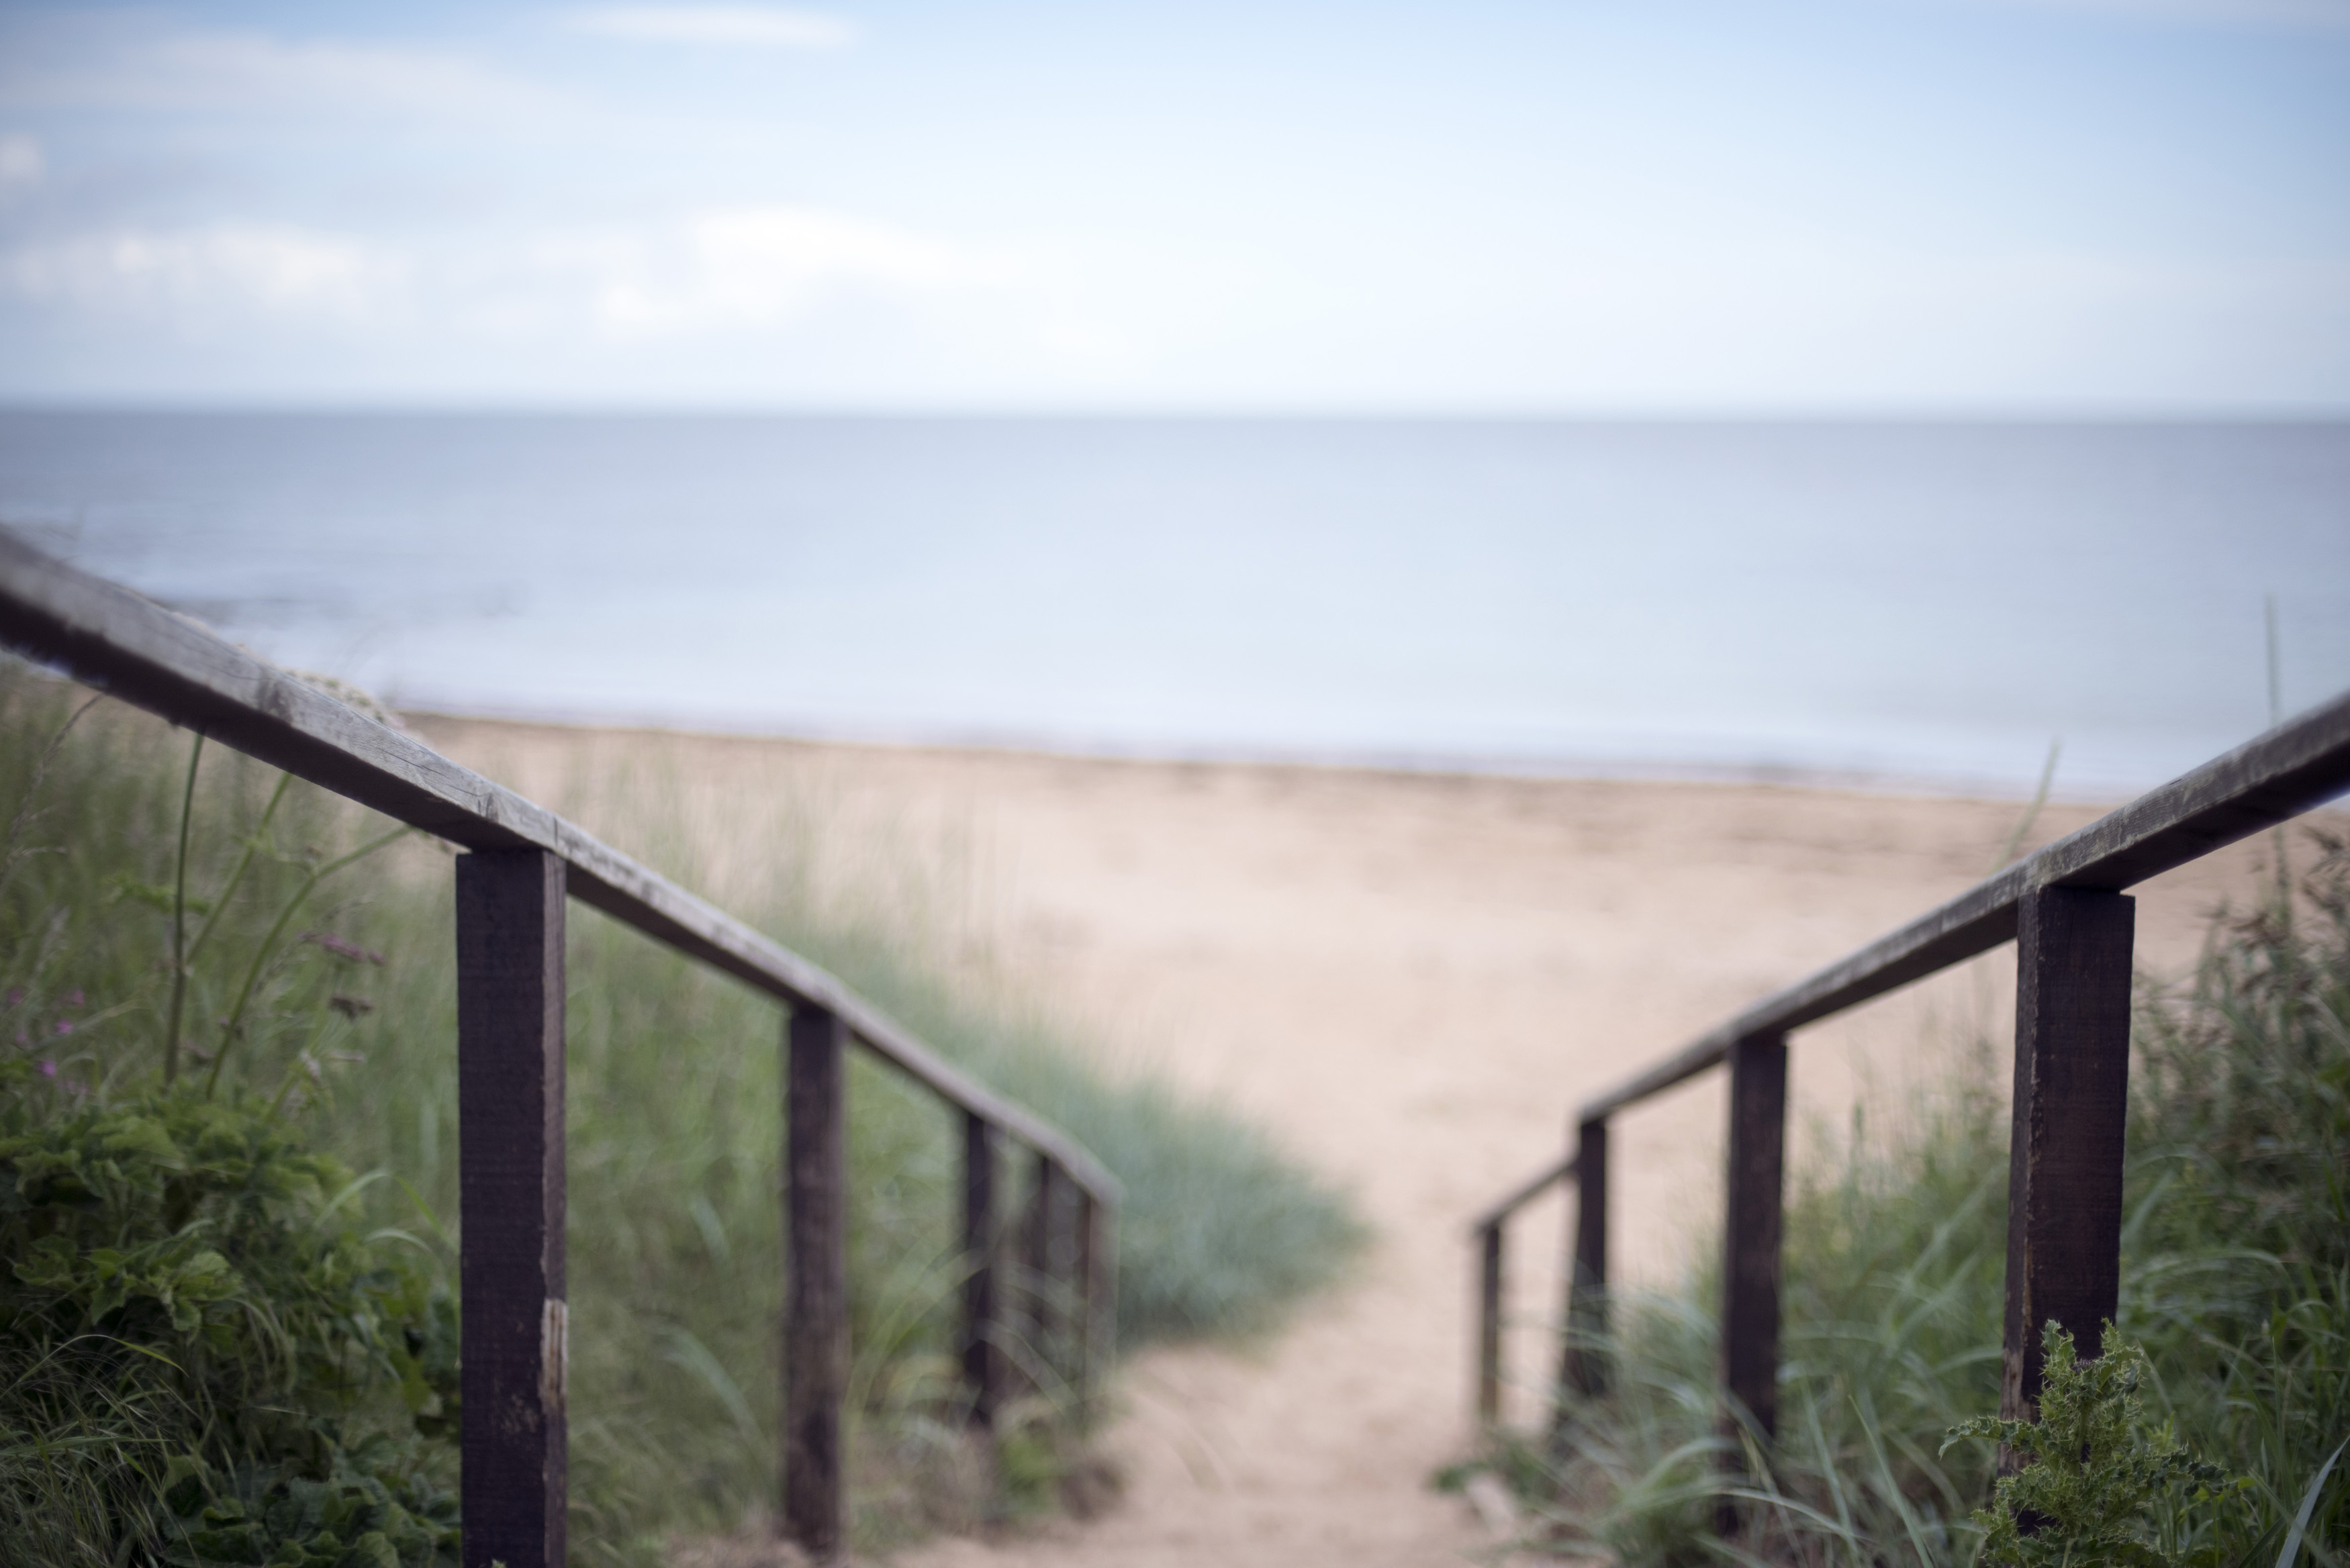 Stairs descending to the sandy beach and calm ocean on the Fife coast in Scotland, UK in a landscape view